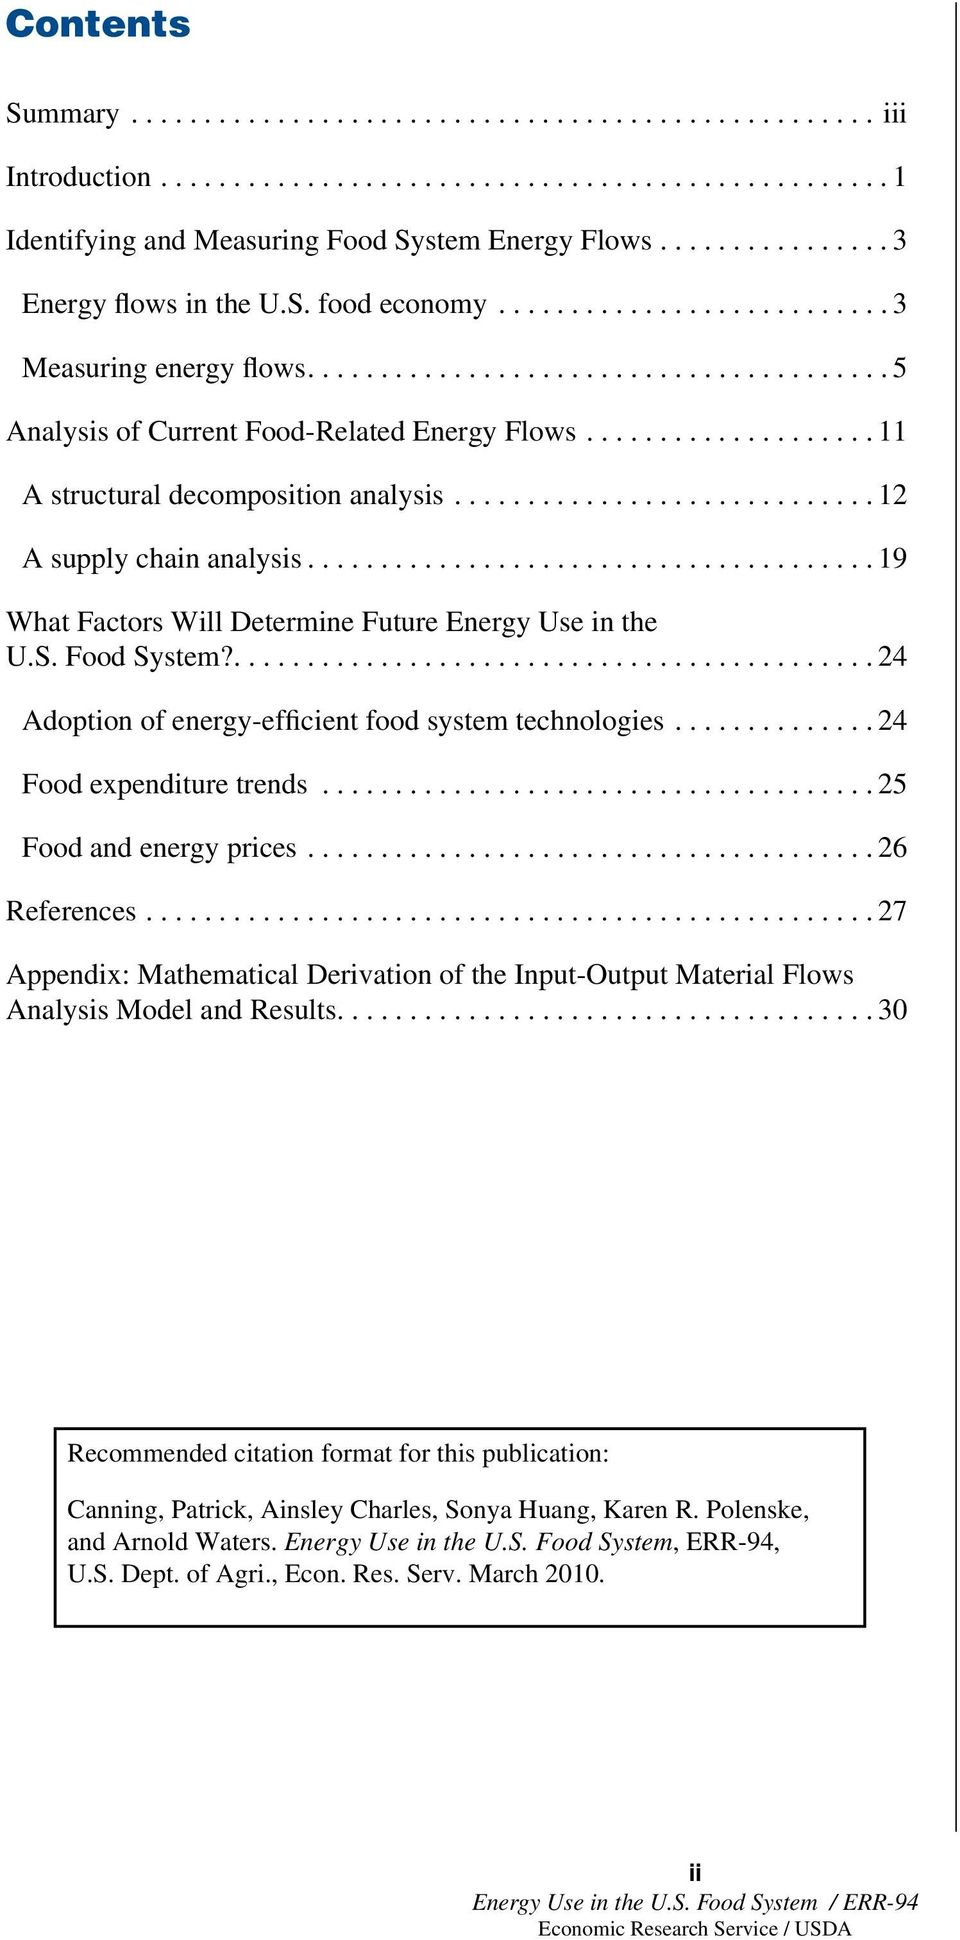 ....24 Adoption of energy-efficient food system technologies...24 Food expenditure trends...25 Food and energy prices...26 References.